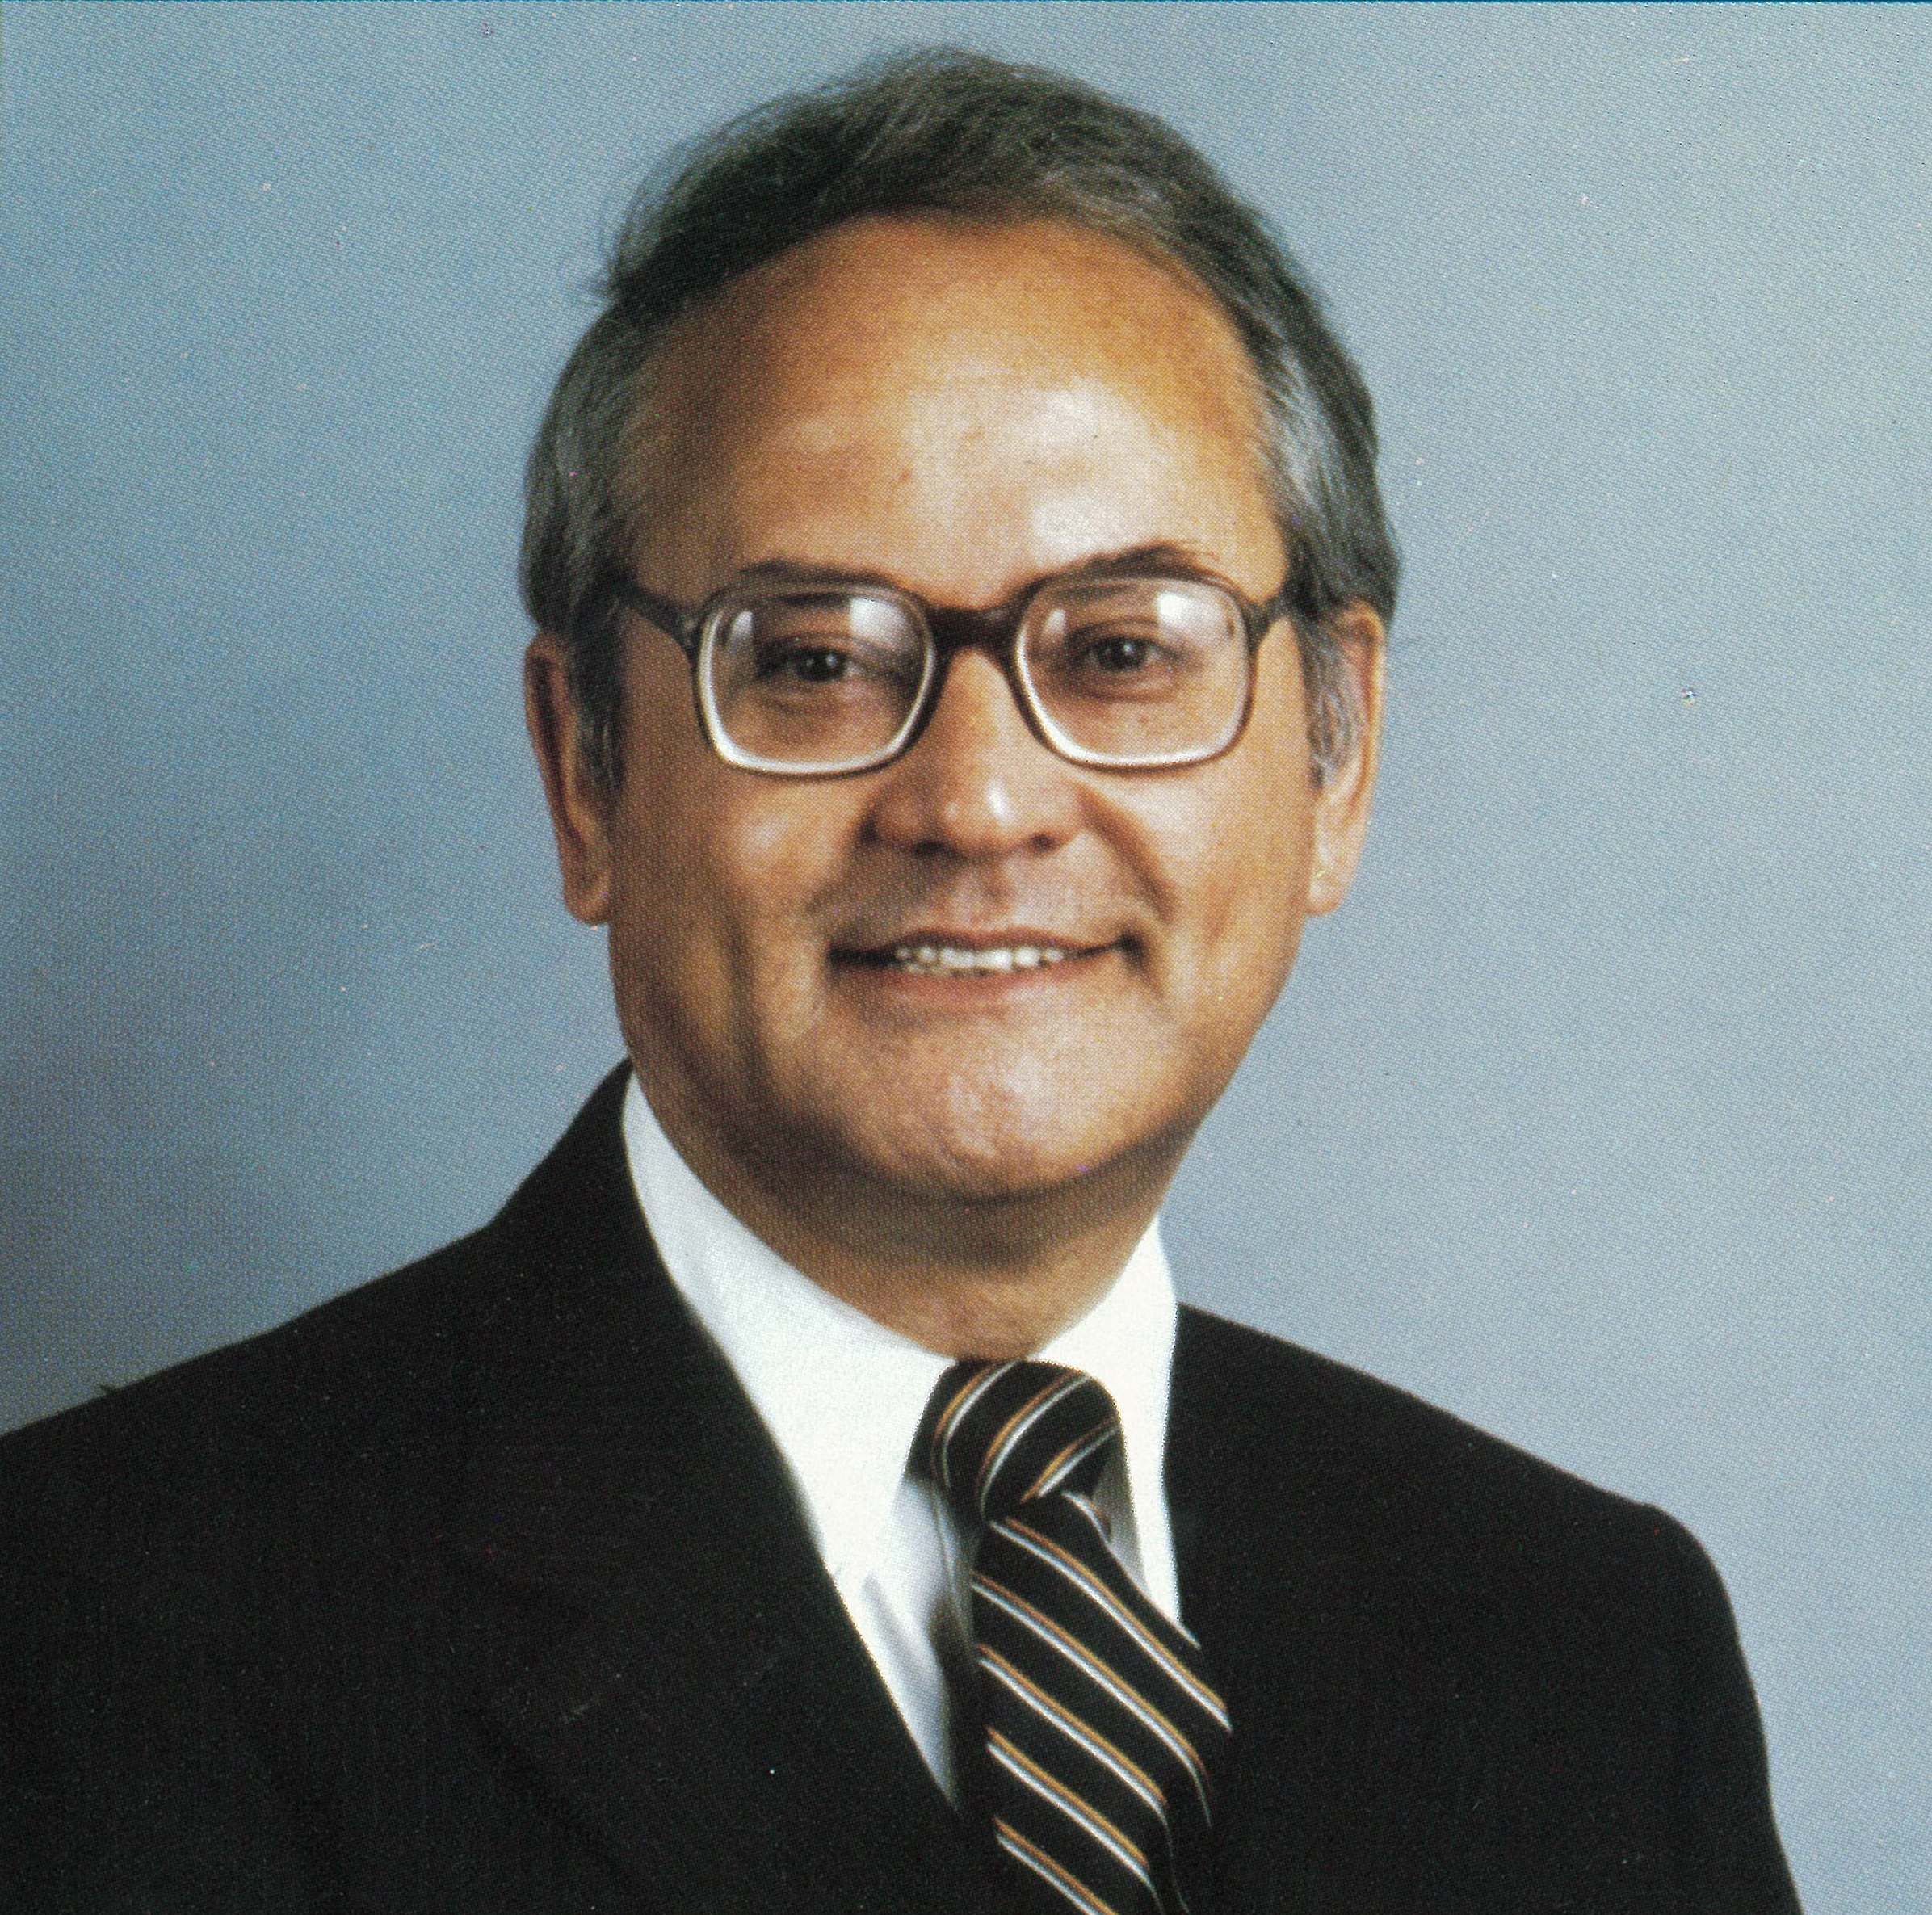 DR. ALFRED WEISS (Photo: Business Wire)